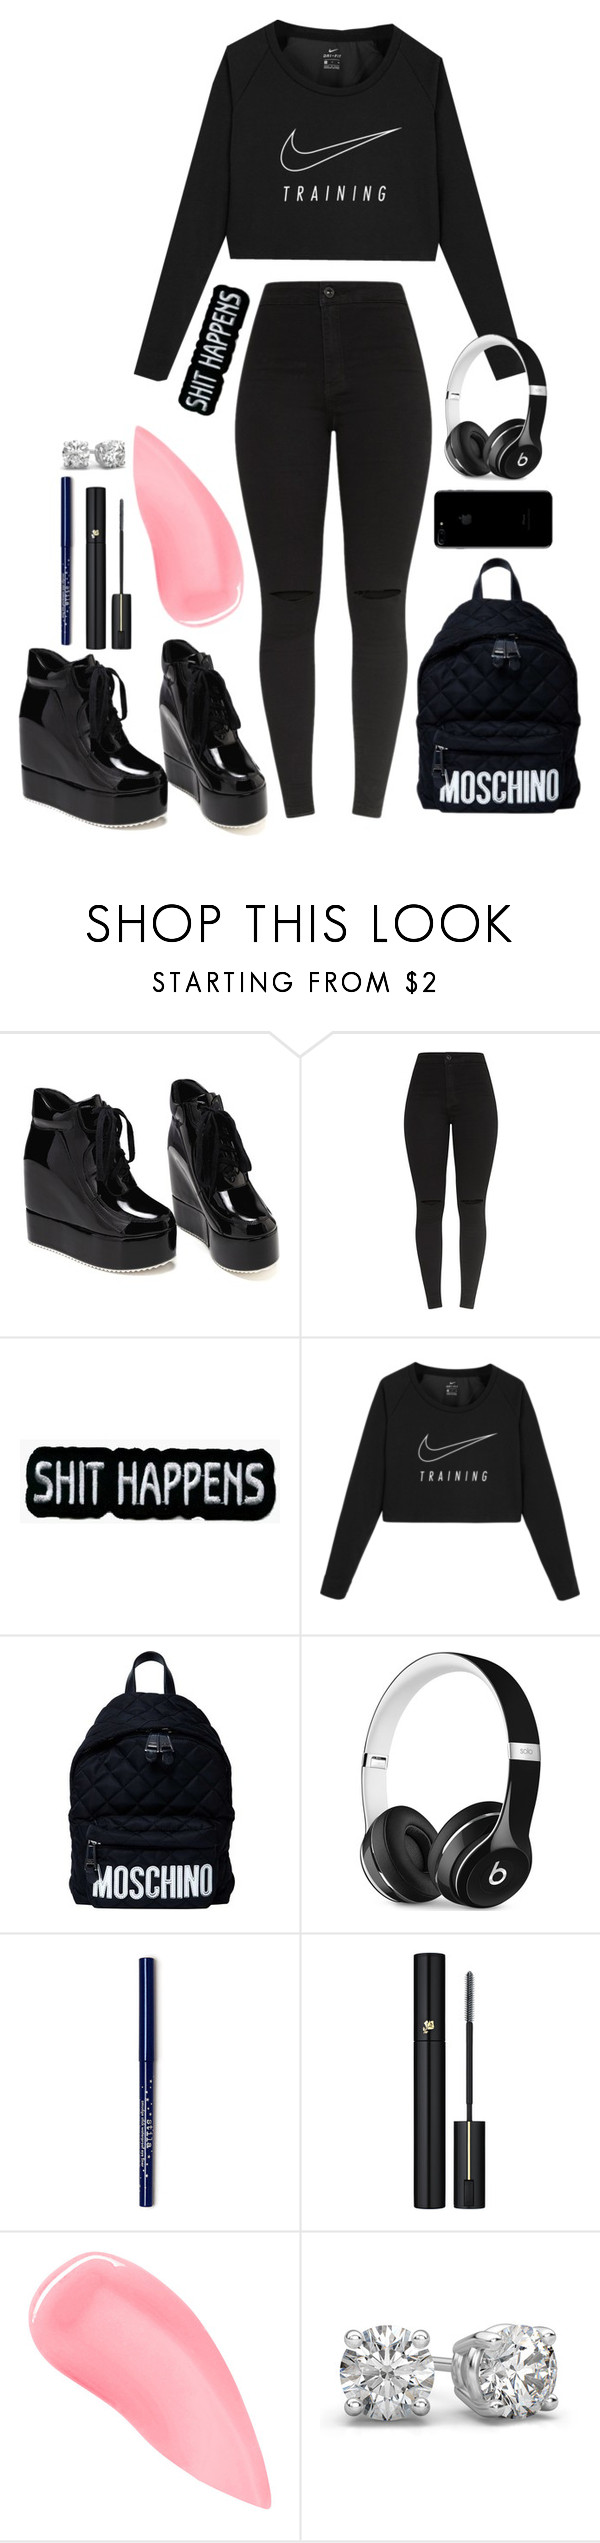 """All Black😎"" by kristine9595 ❤ liked on Polyvore featuring NIKE, Moschino, Beats by Dr. Dre, Lancôme and Kevyn Aucoin"